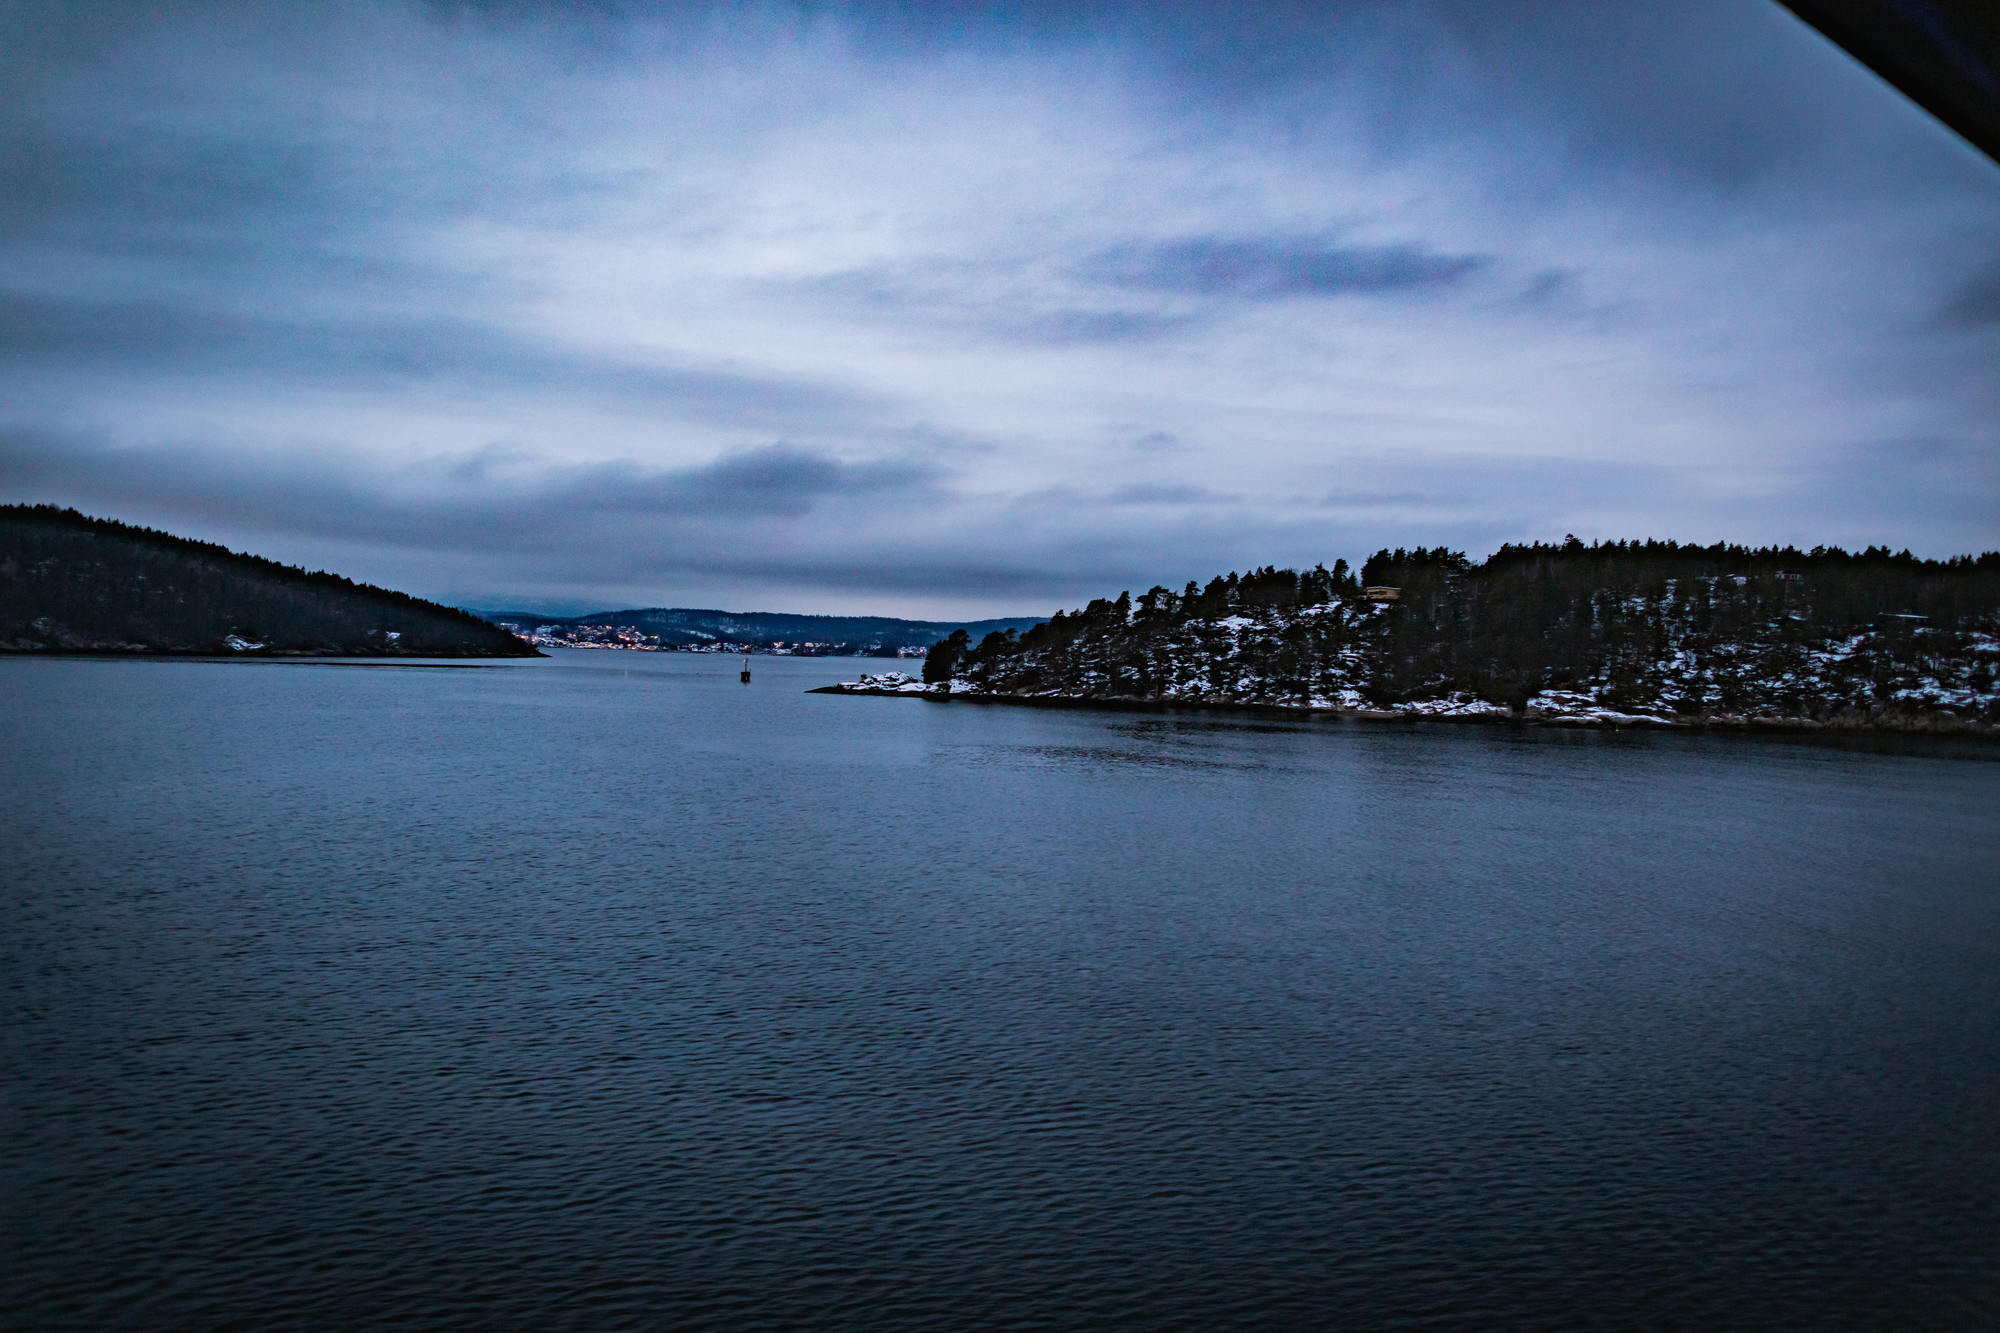 dfds-minicruise-oslo-christmas-time-travel-photography-07